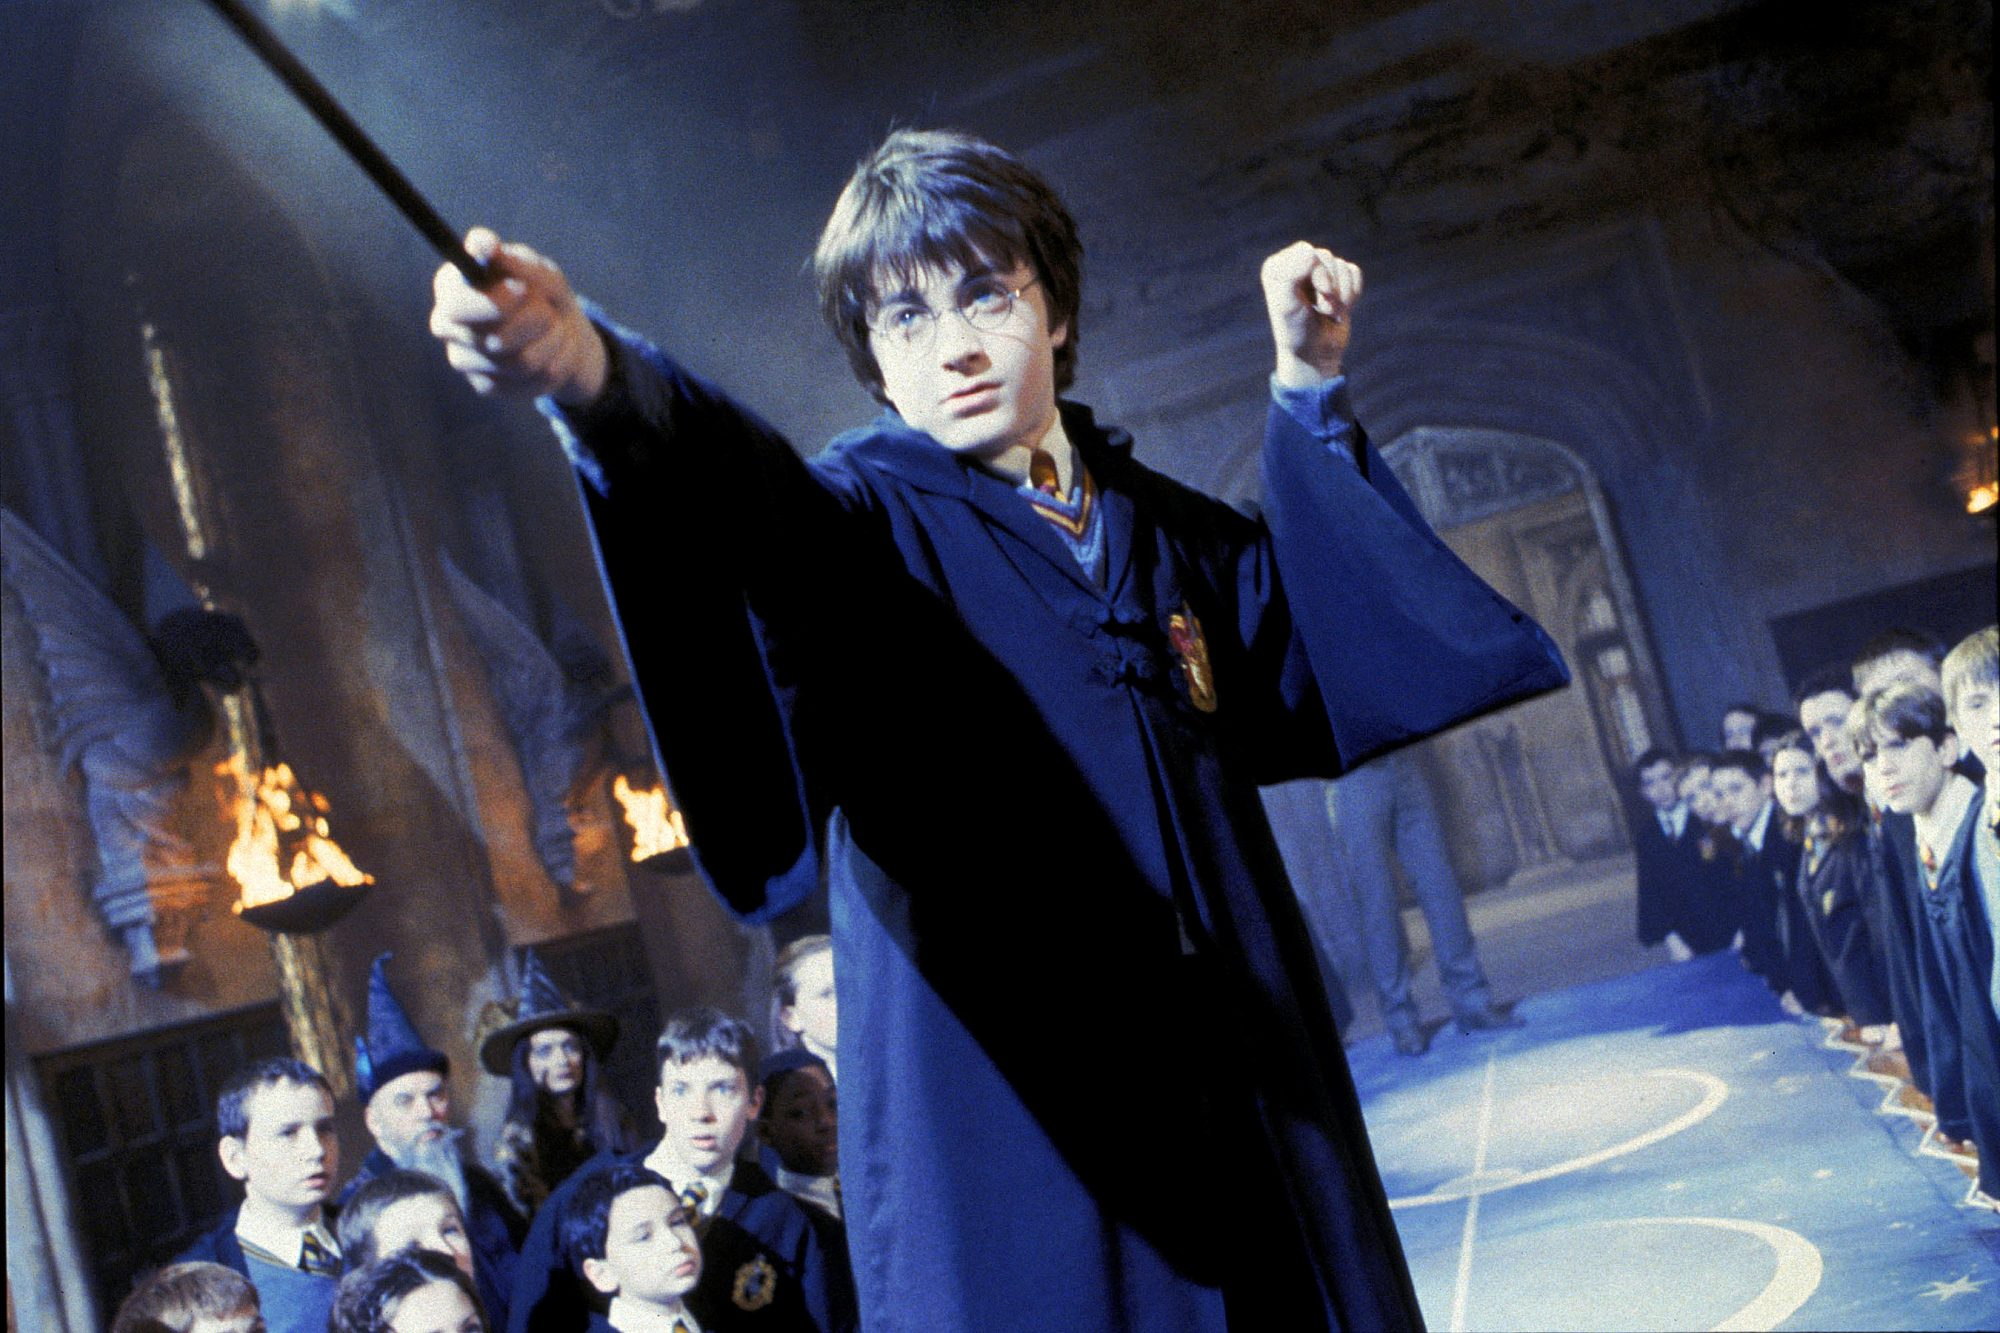 Harry Potter and the Chamber of Secrets (2002)Daniel Radcliffe as Harry Potter